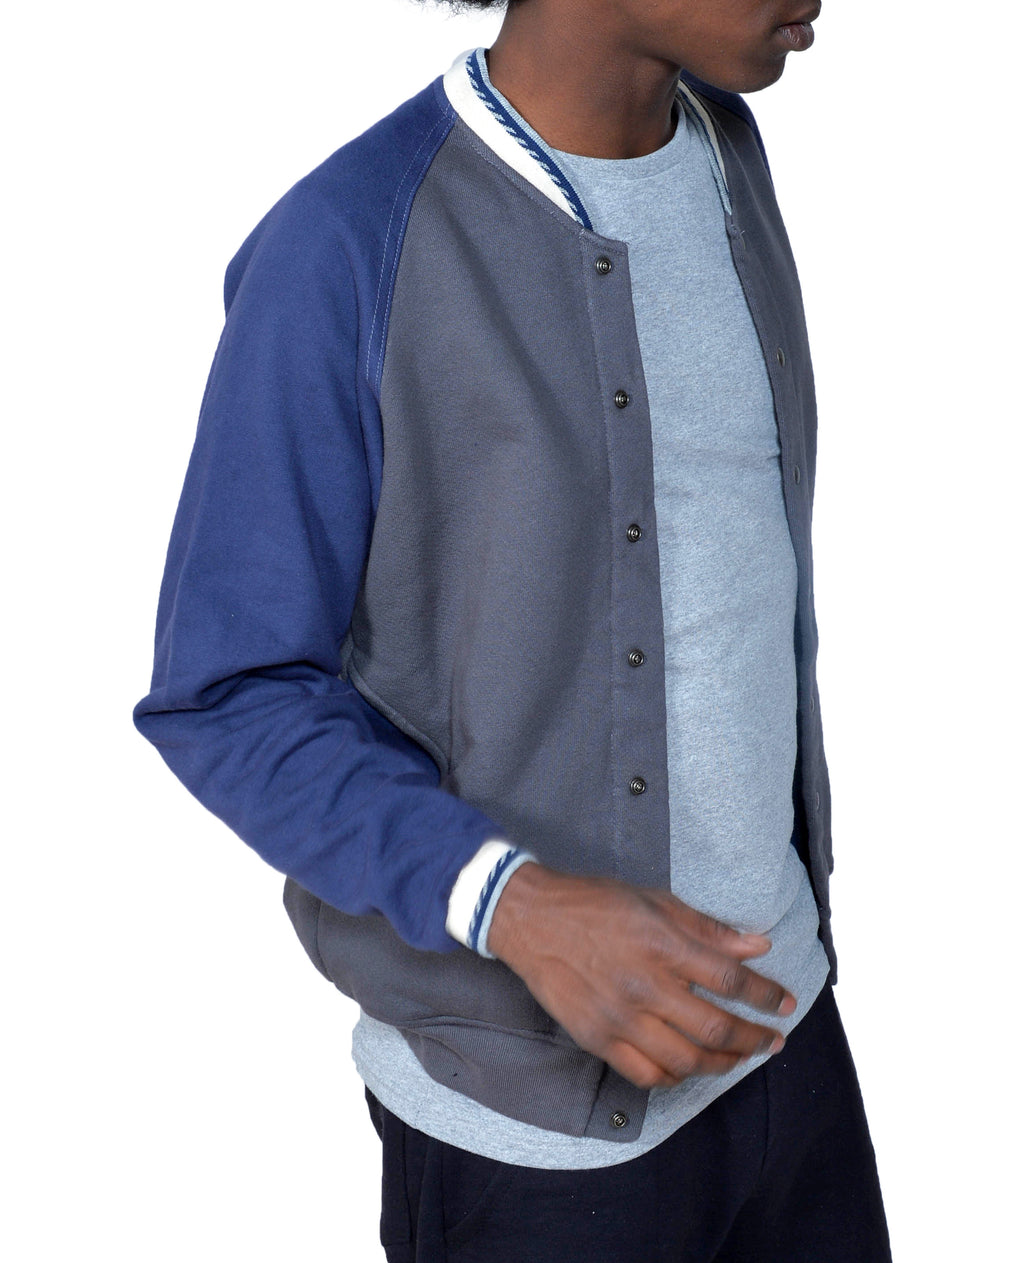 Men's Organic Cotton Baseball Jacket - Graphite/Marine - USA Made - Asheville Apparel